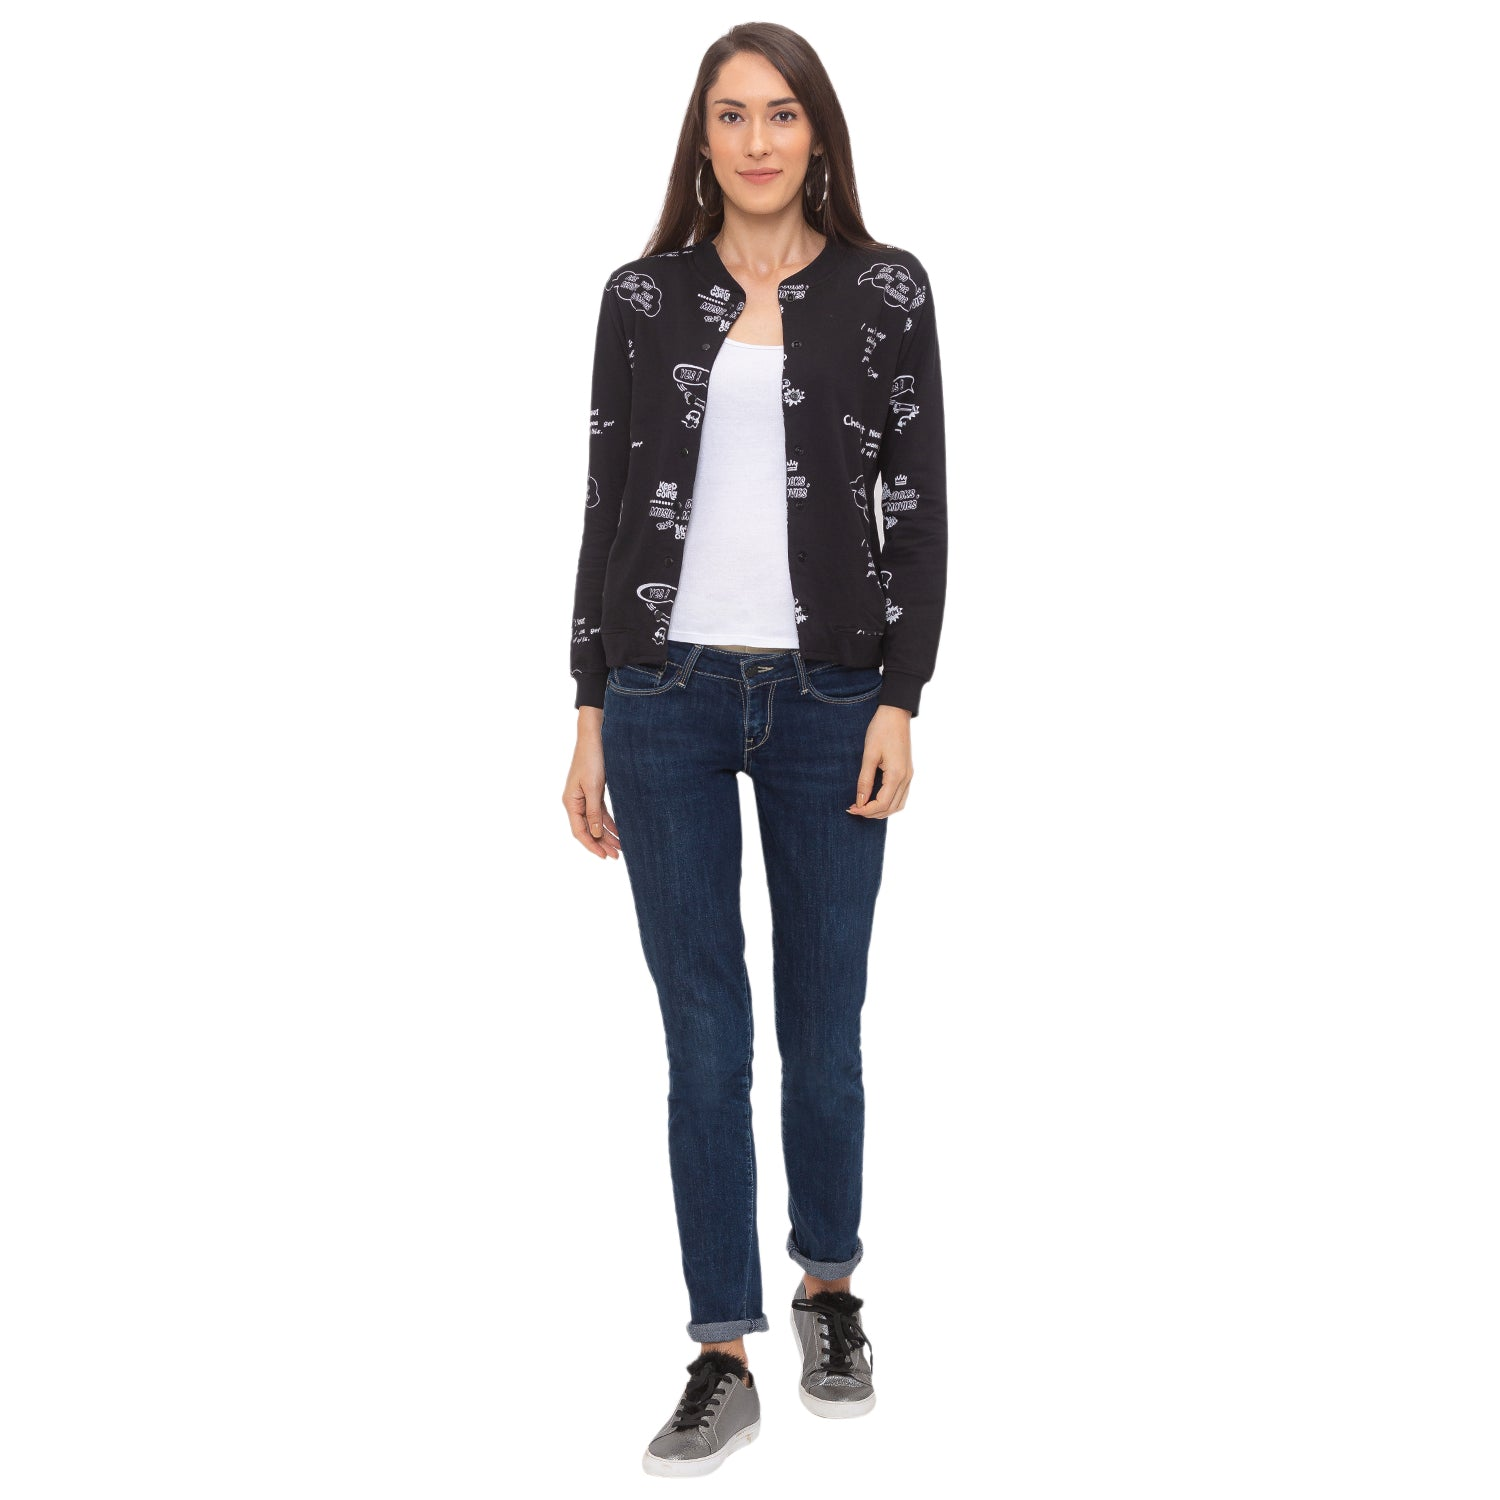 Globus Black Printed Jacket-6